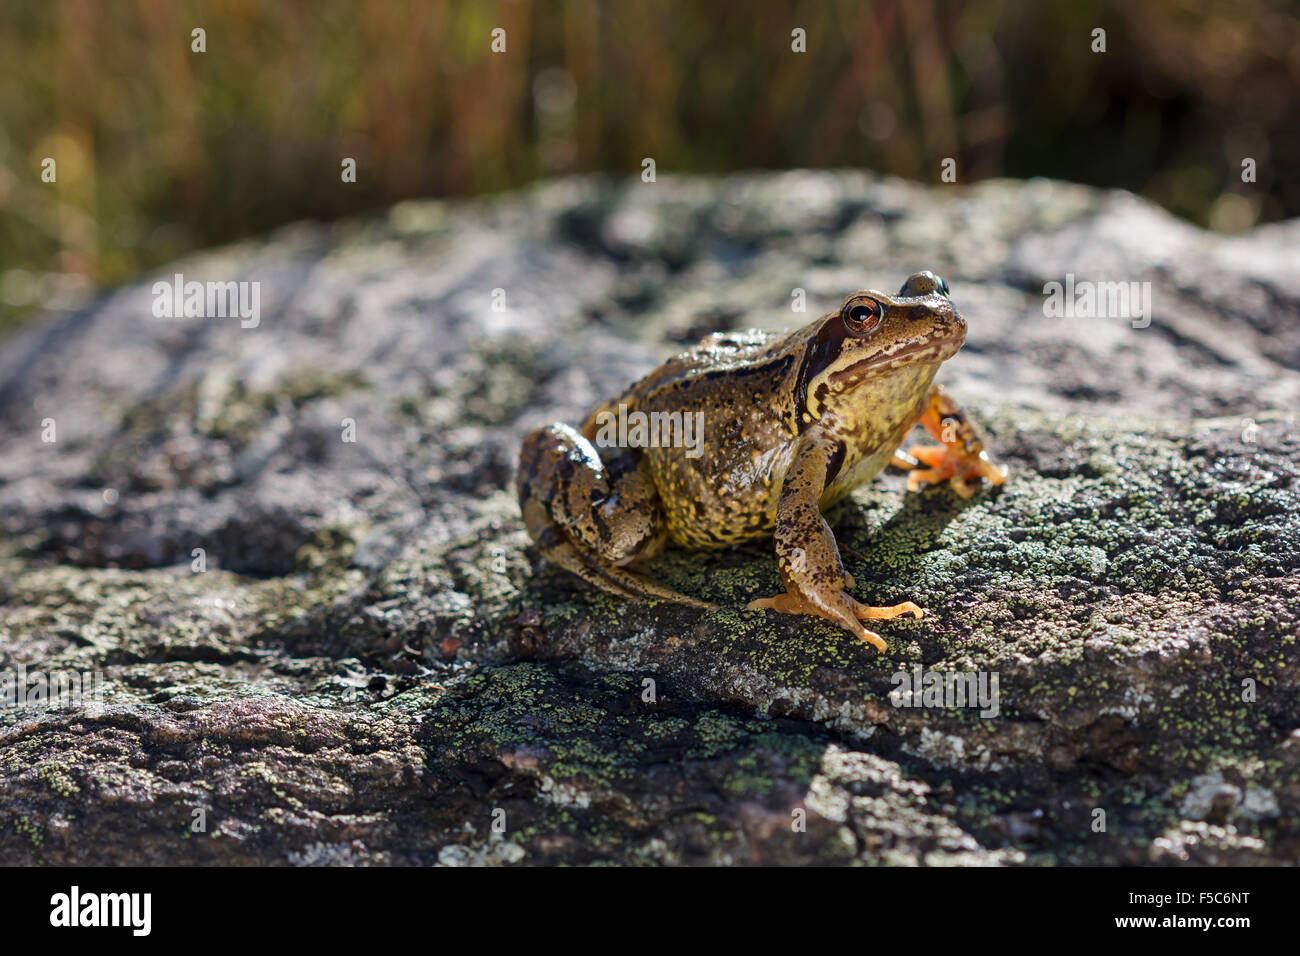 Common Frog (Rana temporaria) sitting on a stone - Stock Image